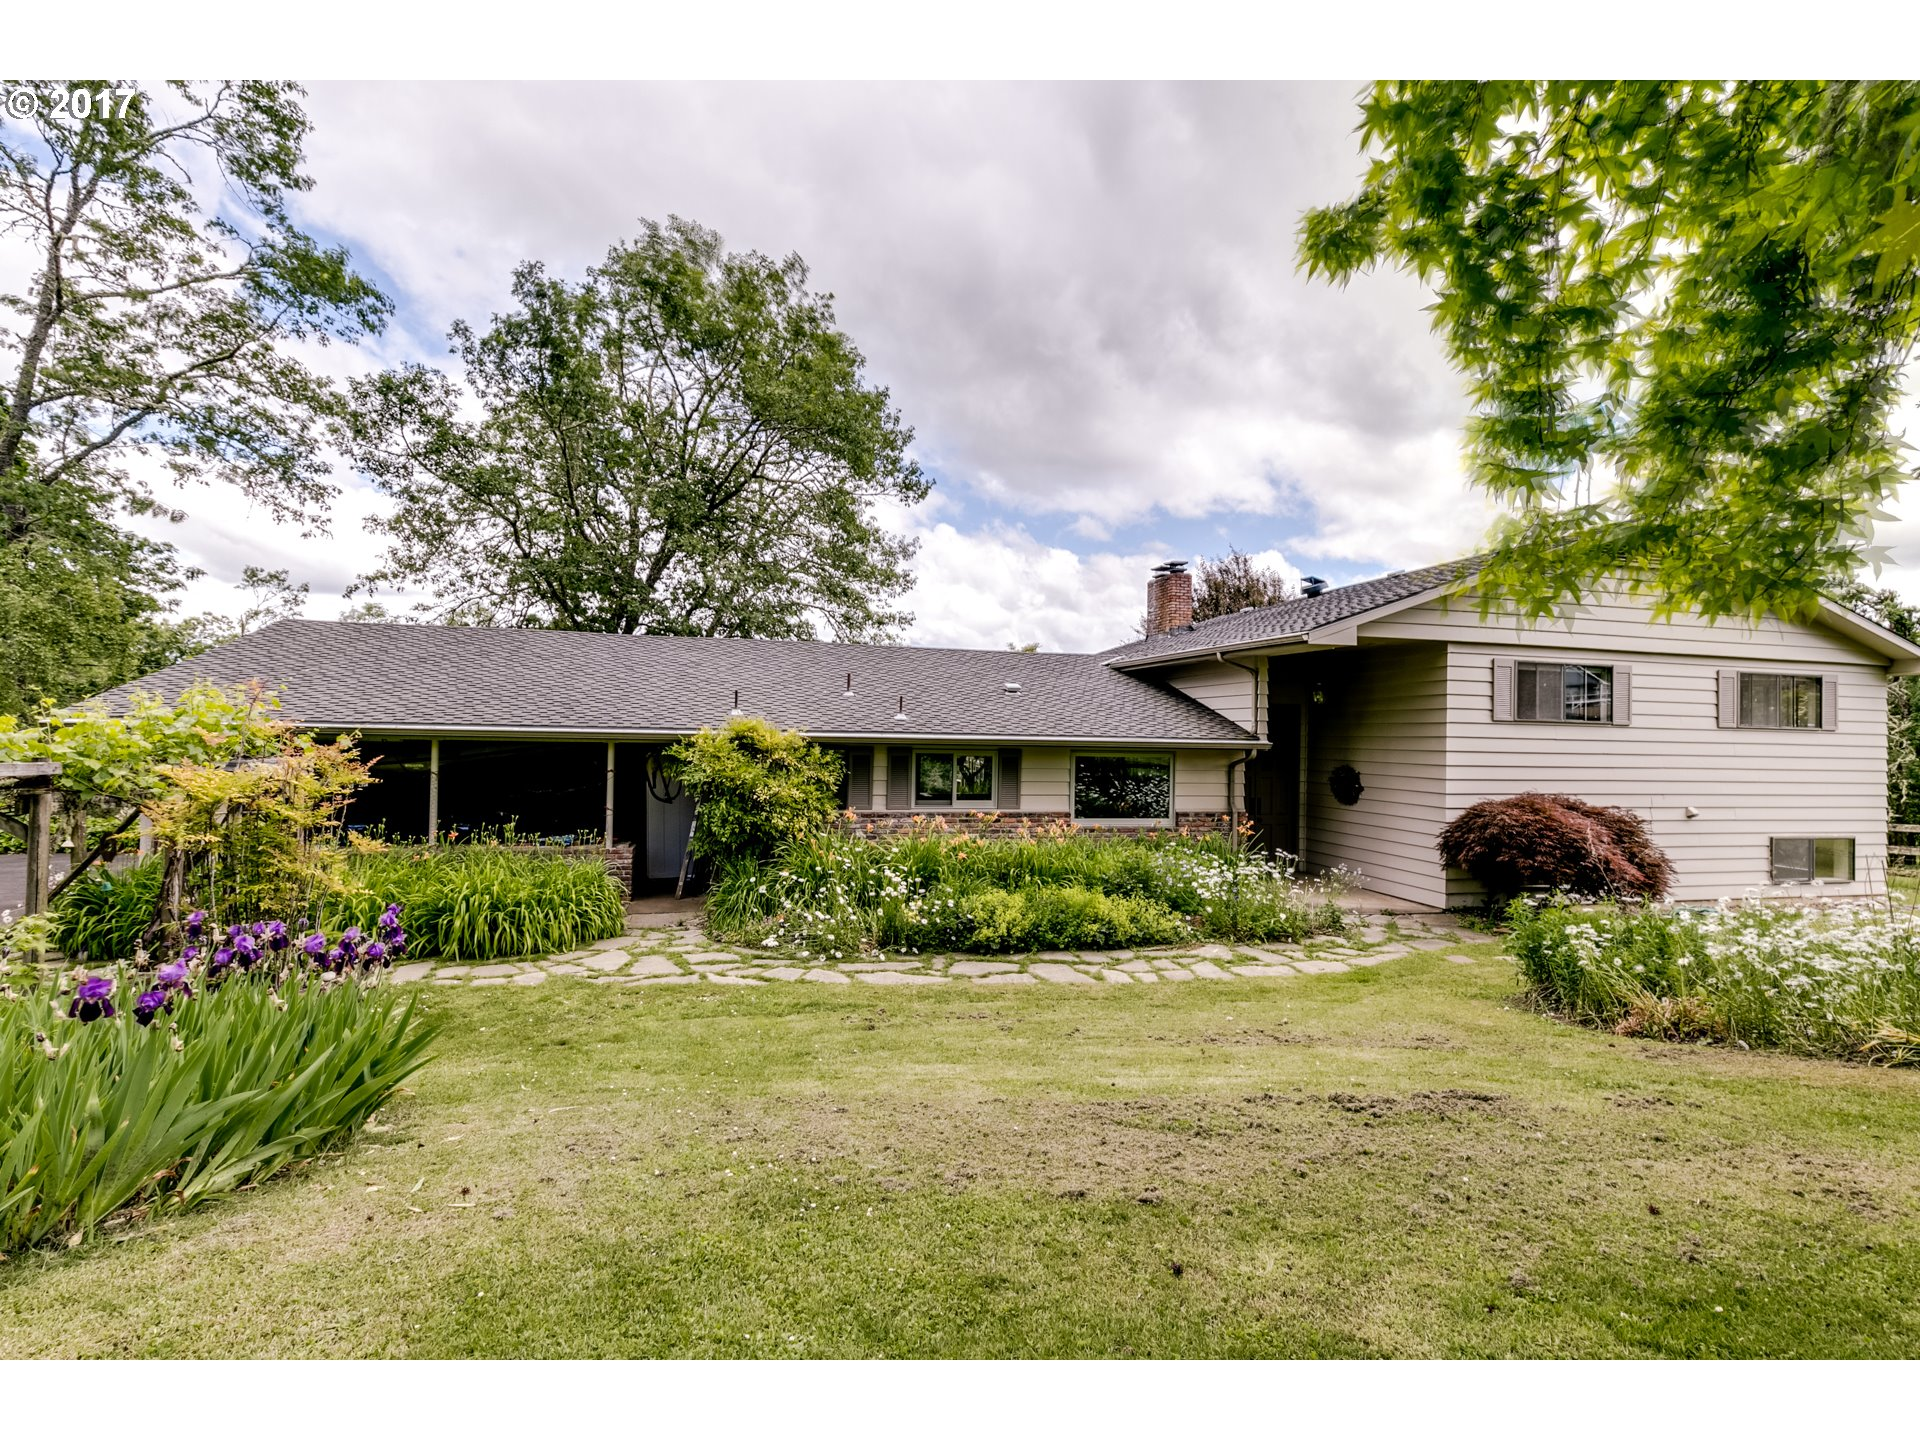 87451 GREENHILL RD, Eugene, OR 97402